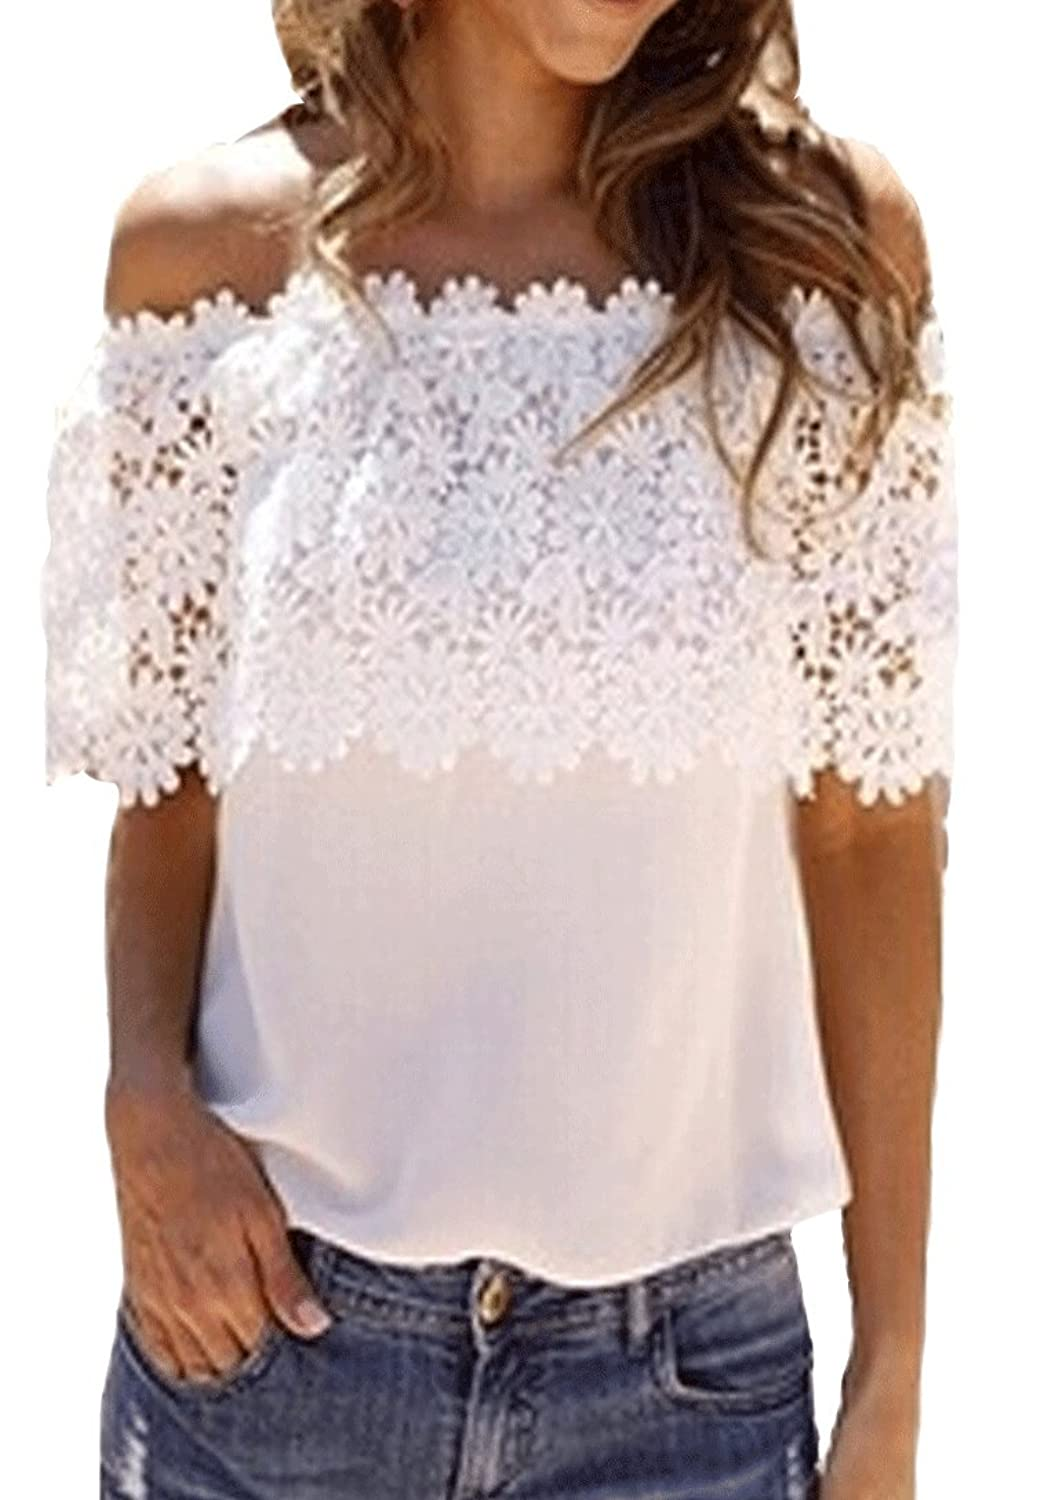 XFashion Damen's-reizvolles Abend-Lace Shoulder Off Chiffon T-Shirt